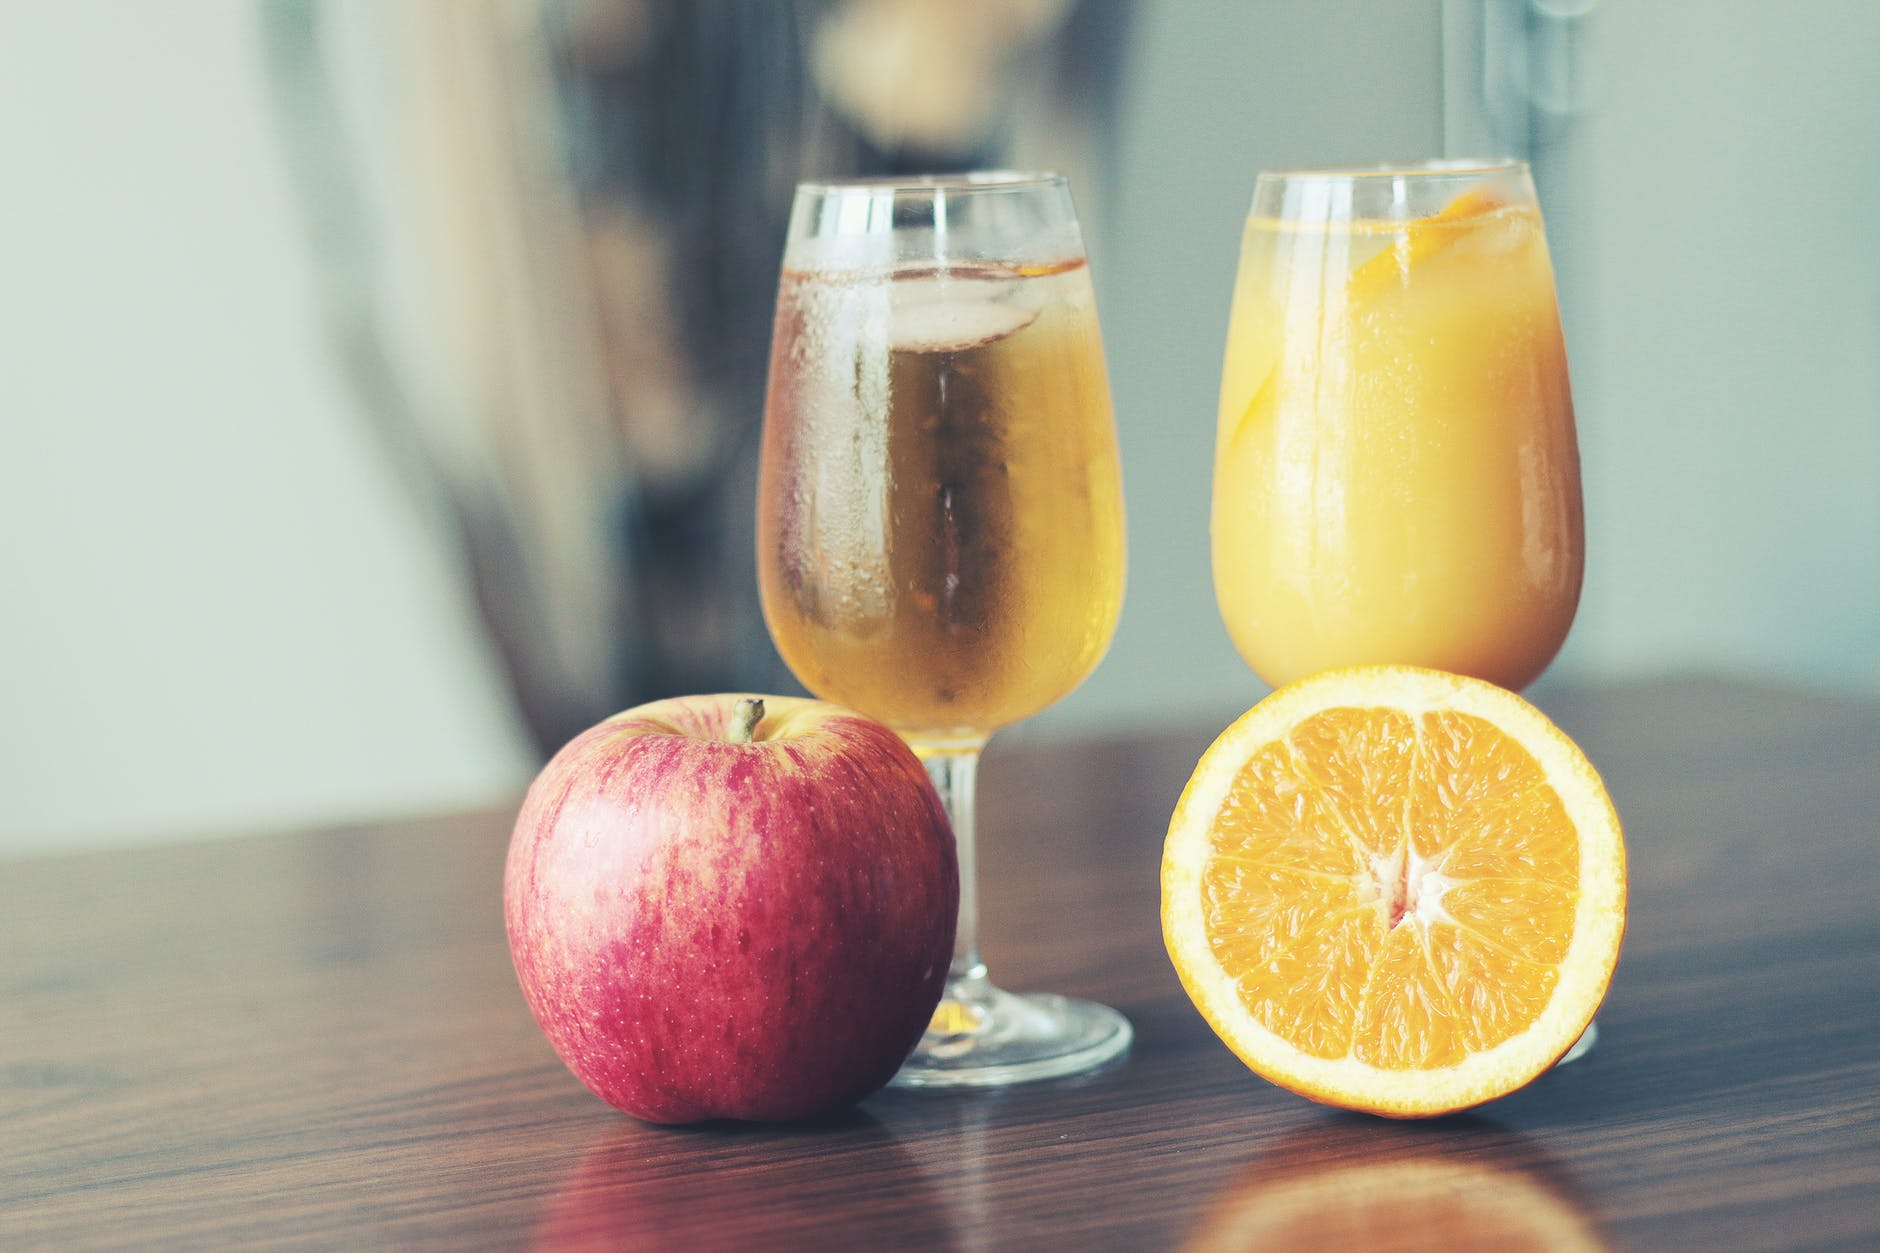 Healthy and tasty beverage recipes for the challenging times of COVID-19 – John Spach